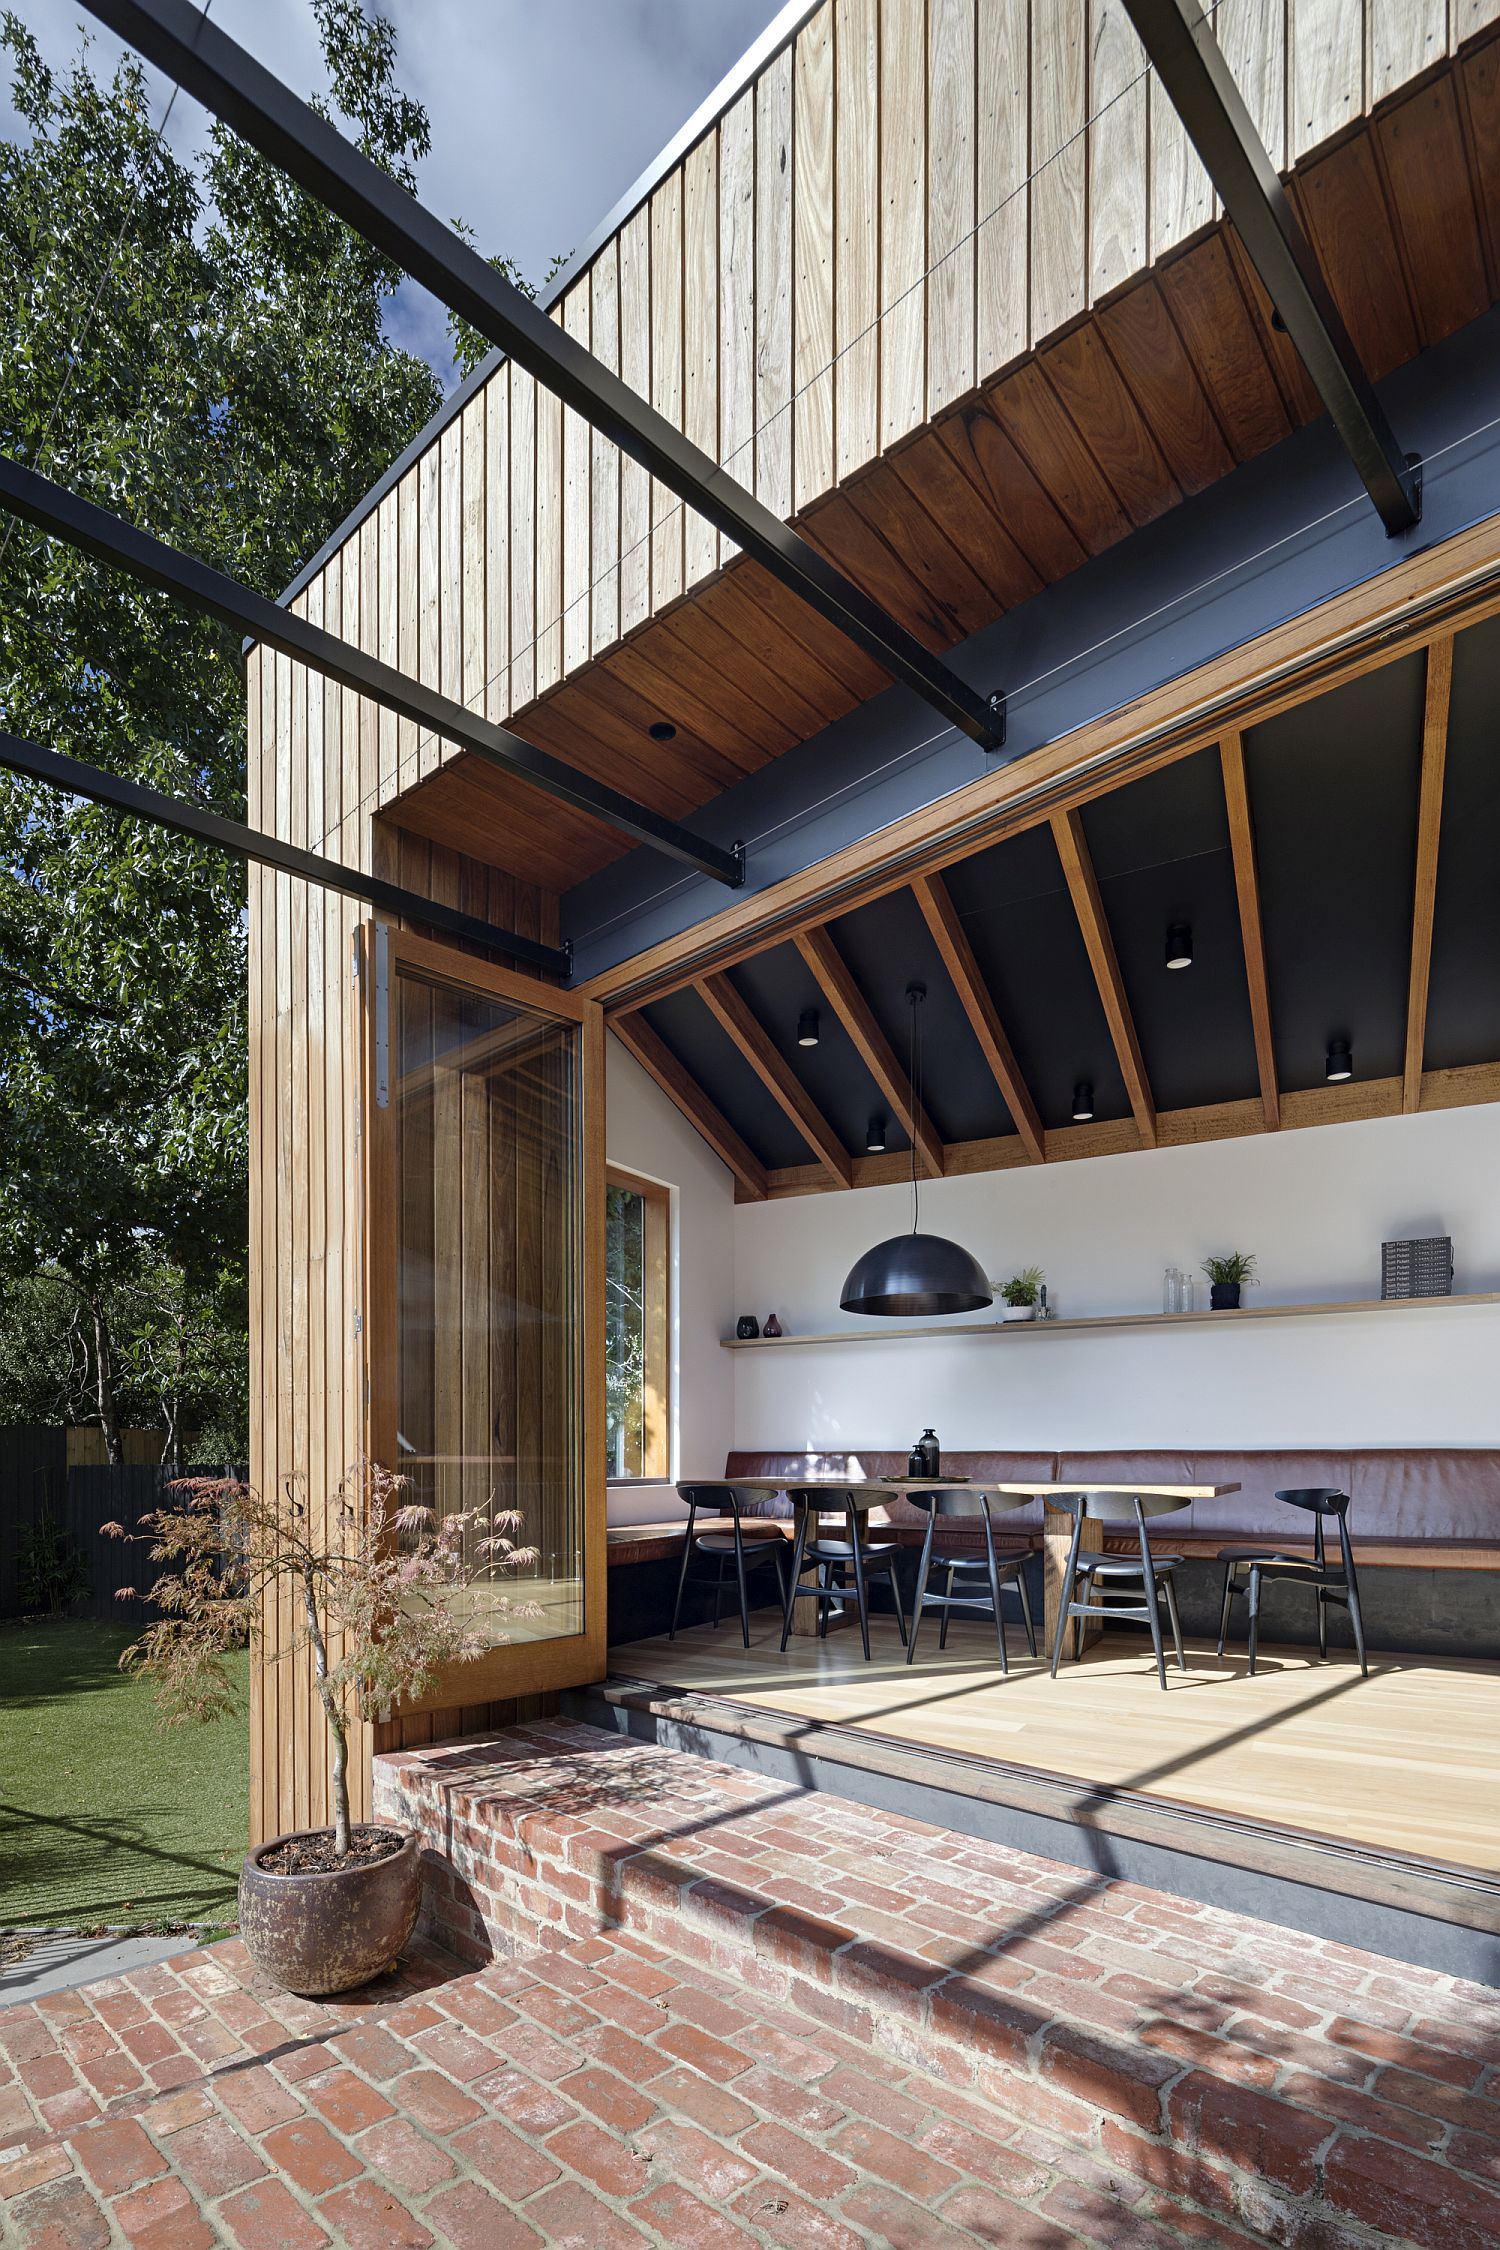 Bi-folding and stackable doors connect the kitchen with the outdoors